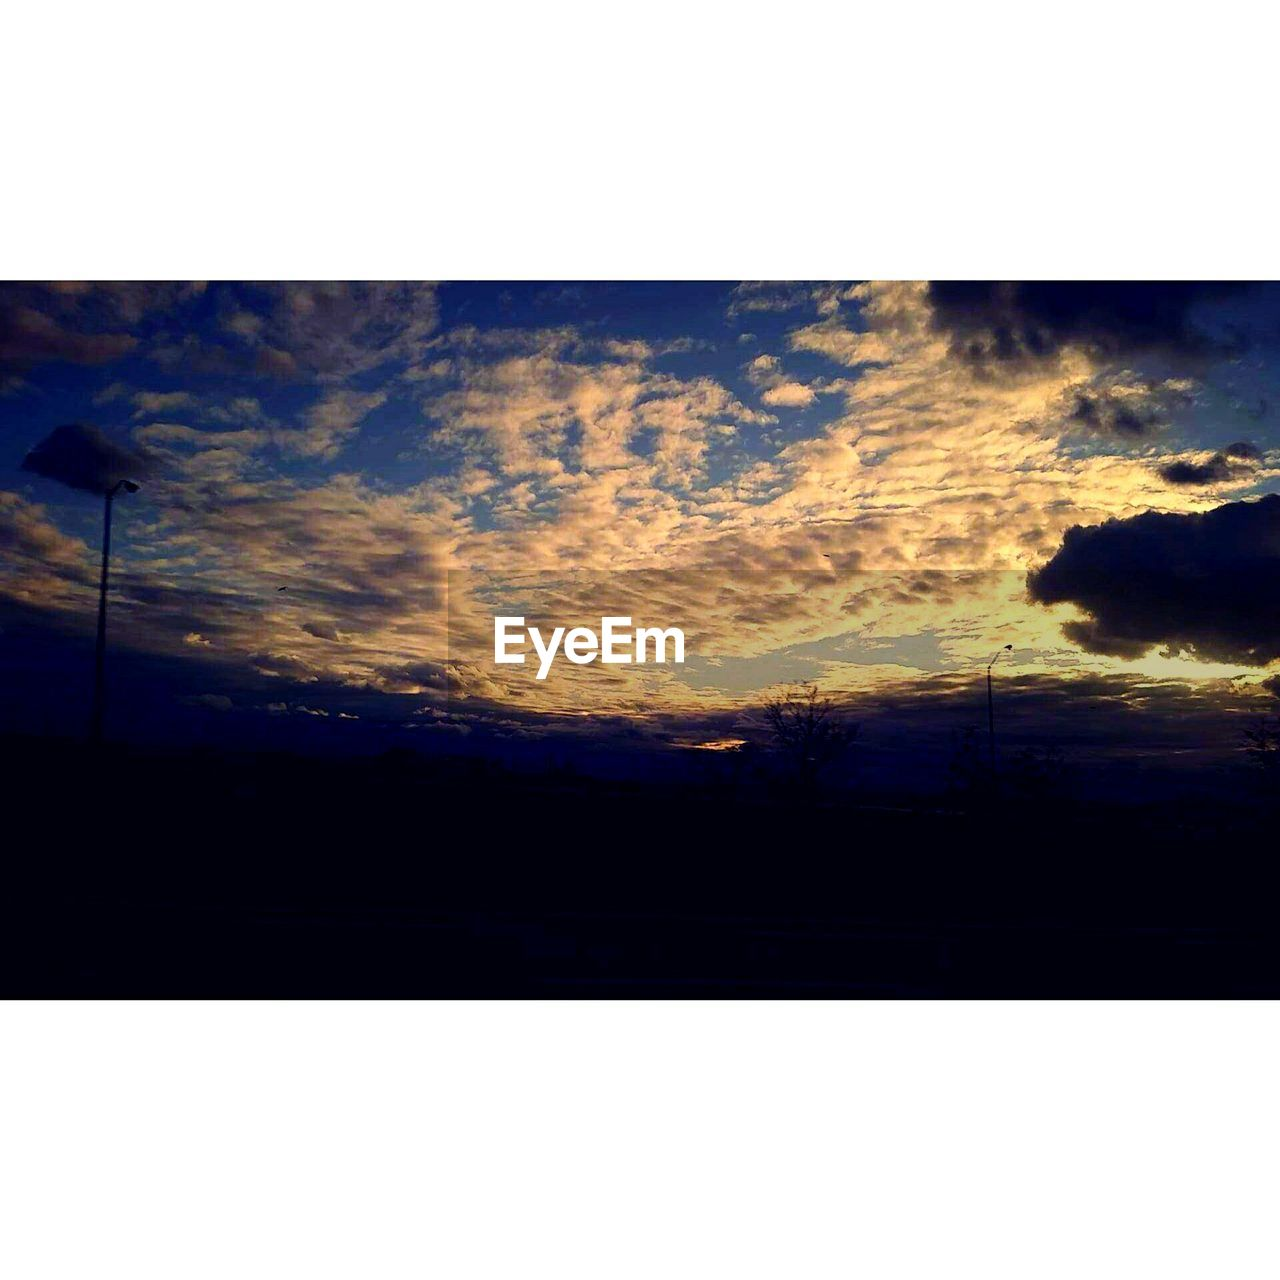 sunset, sky, nature, scenics, no people, silhouette, beauty in nature, cloud - sky, tranquility, tranquil scene, outdoors, day